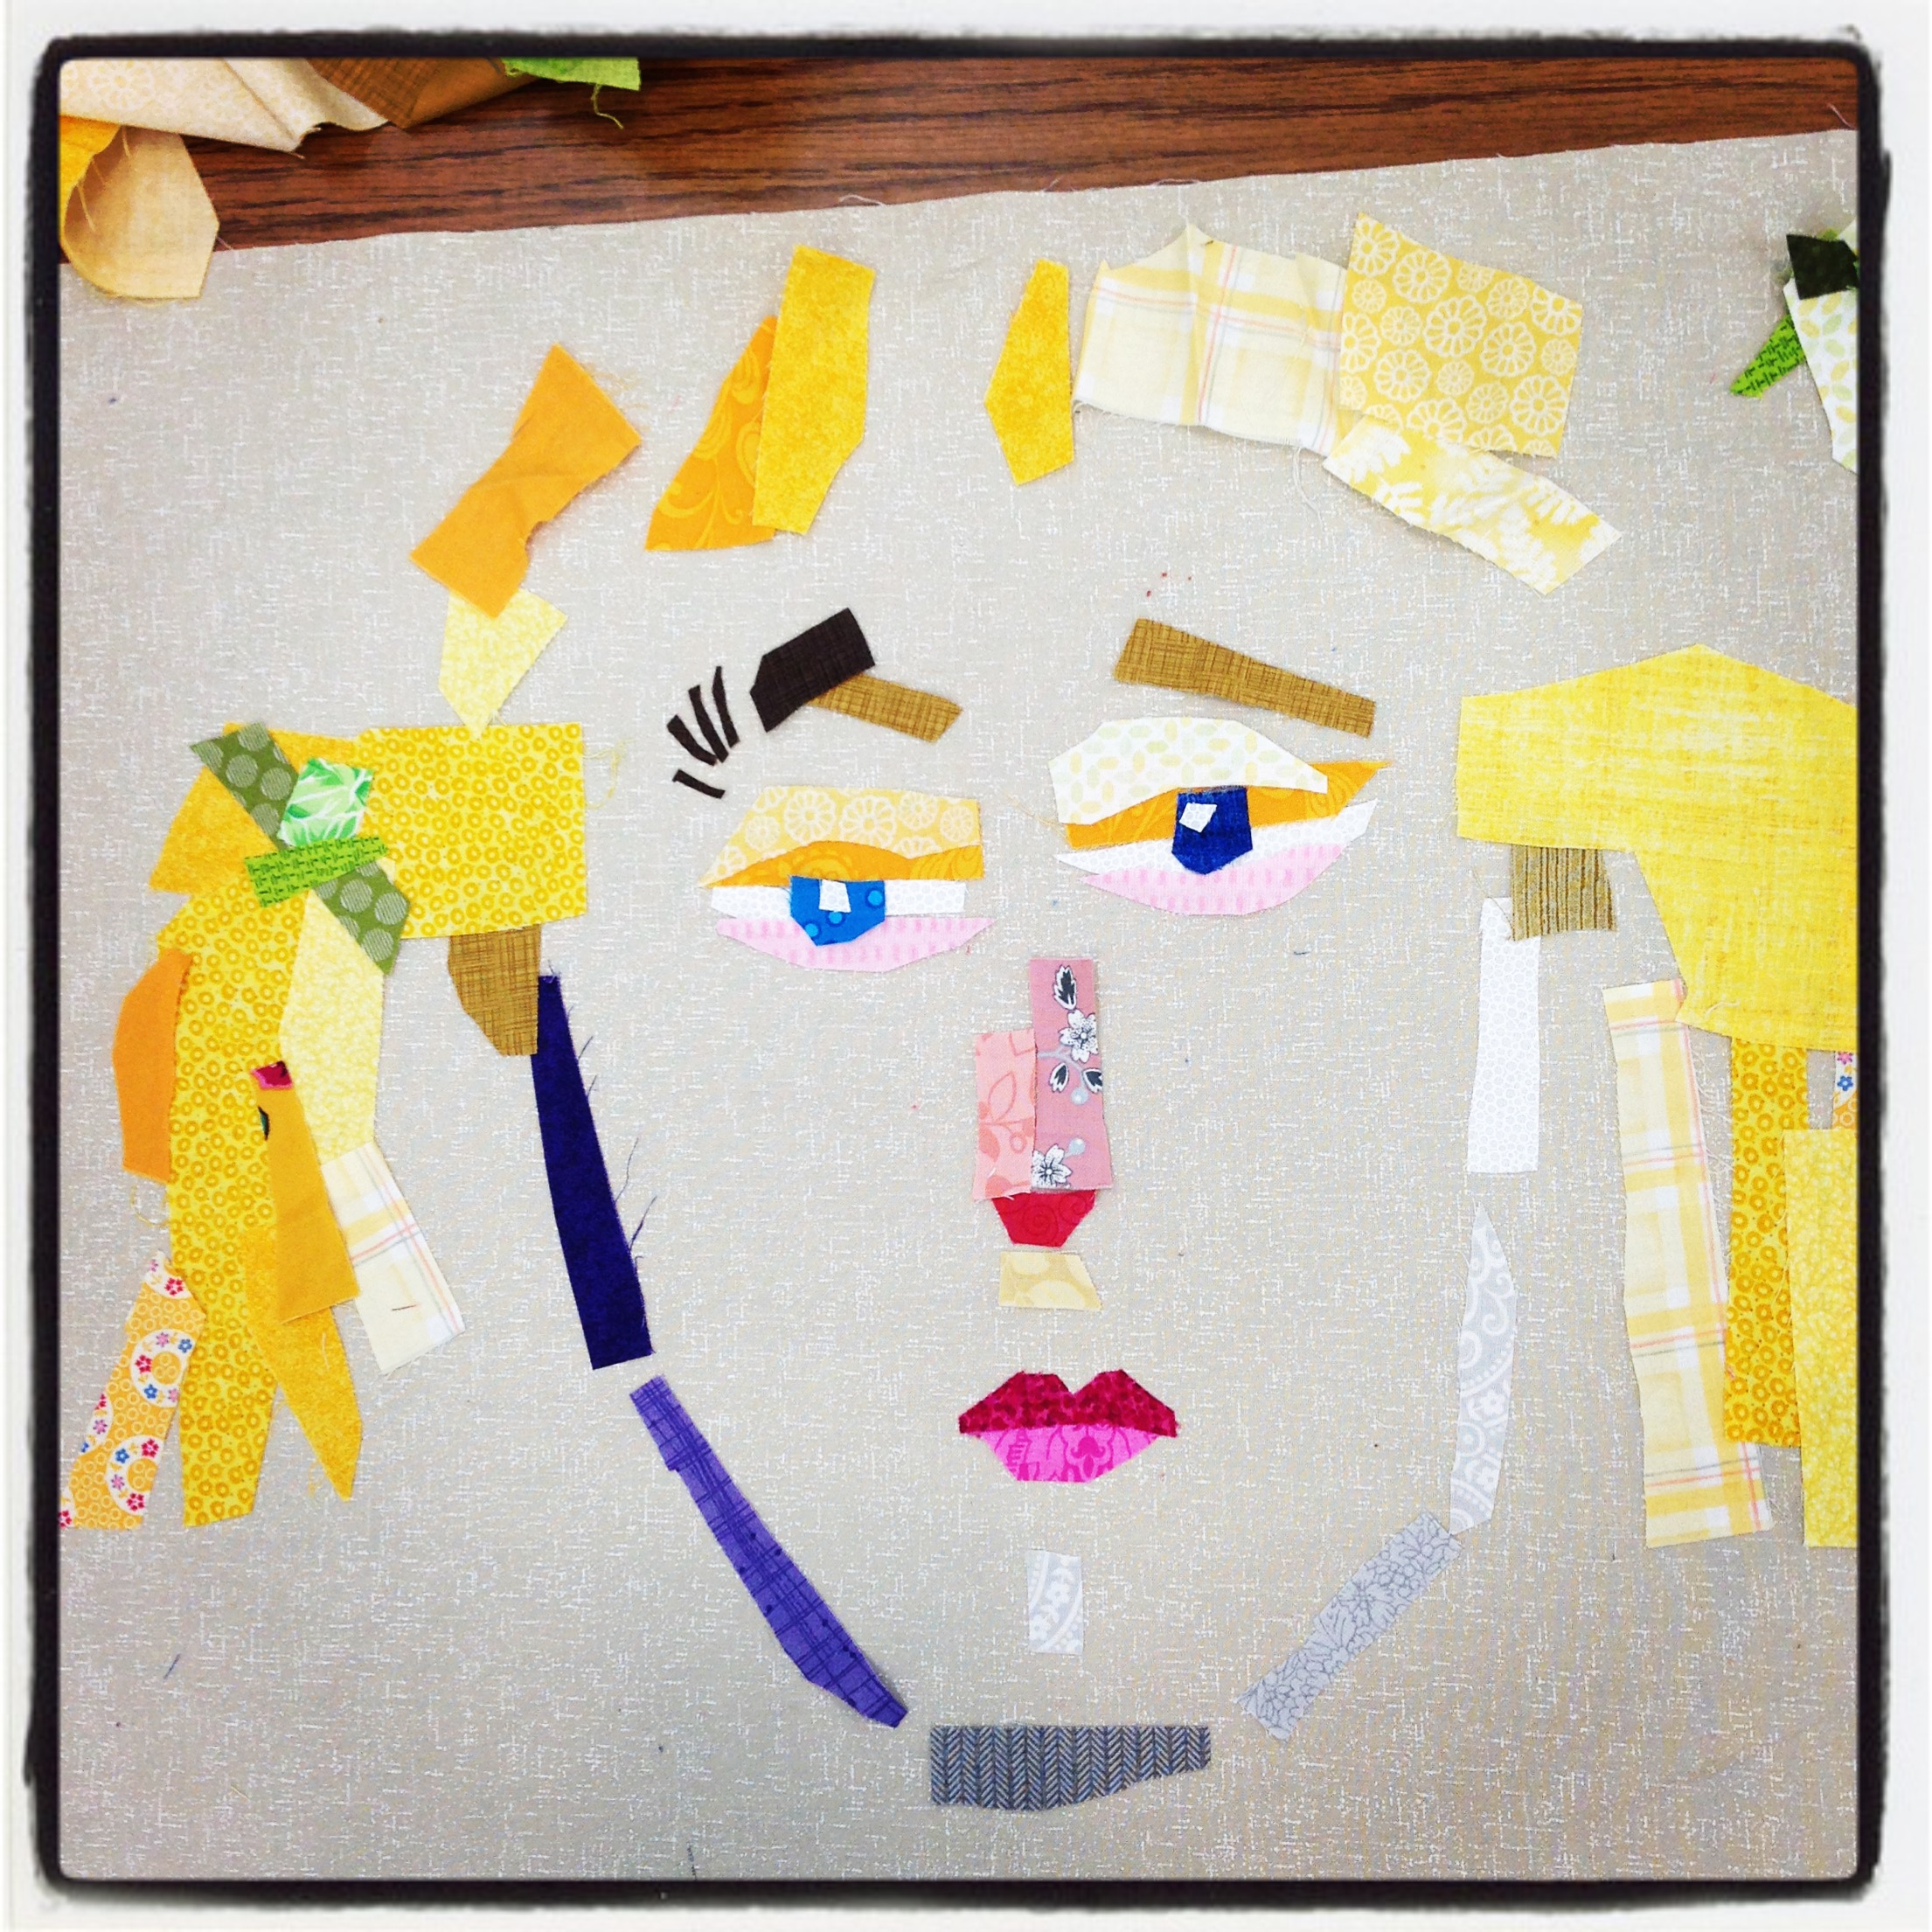 Student work by Beth Stephens in Making Faces with Melissa Averinos class.